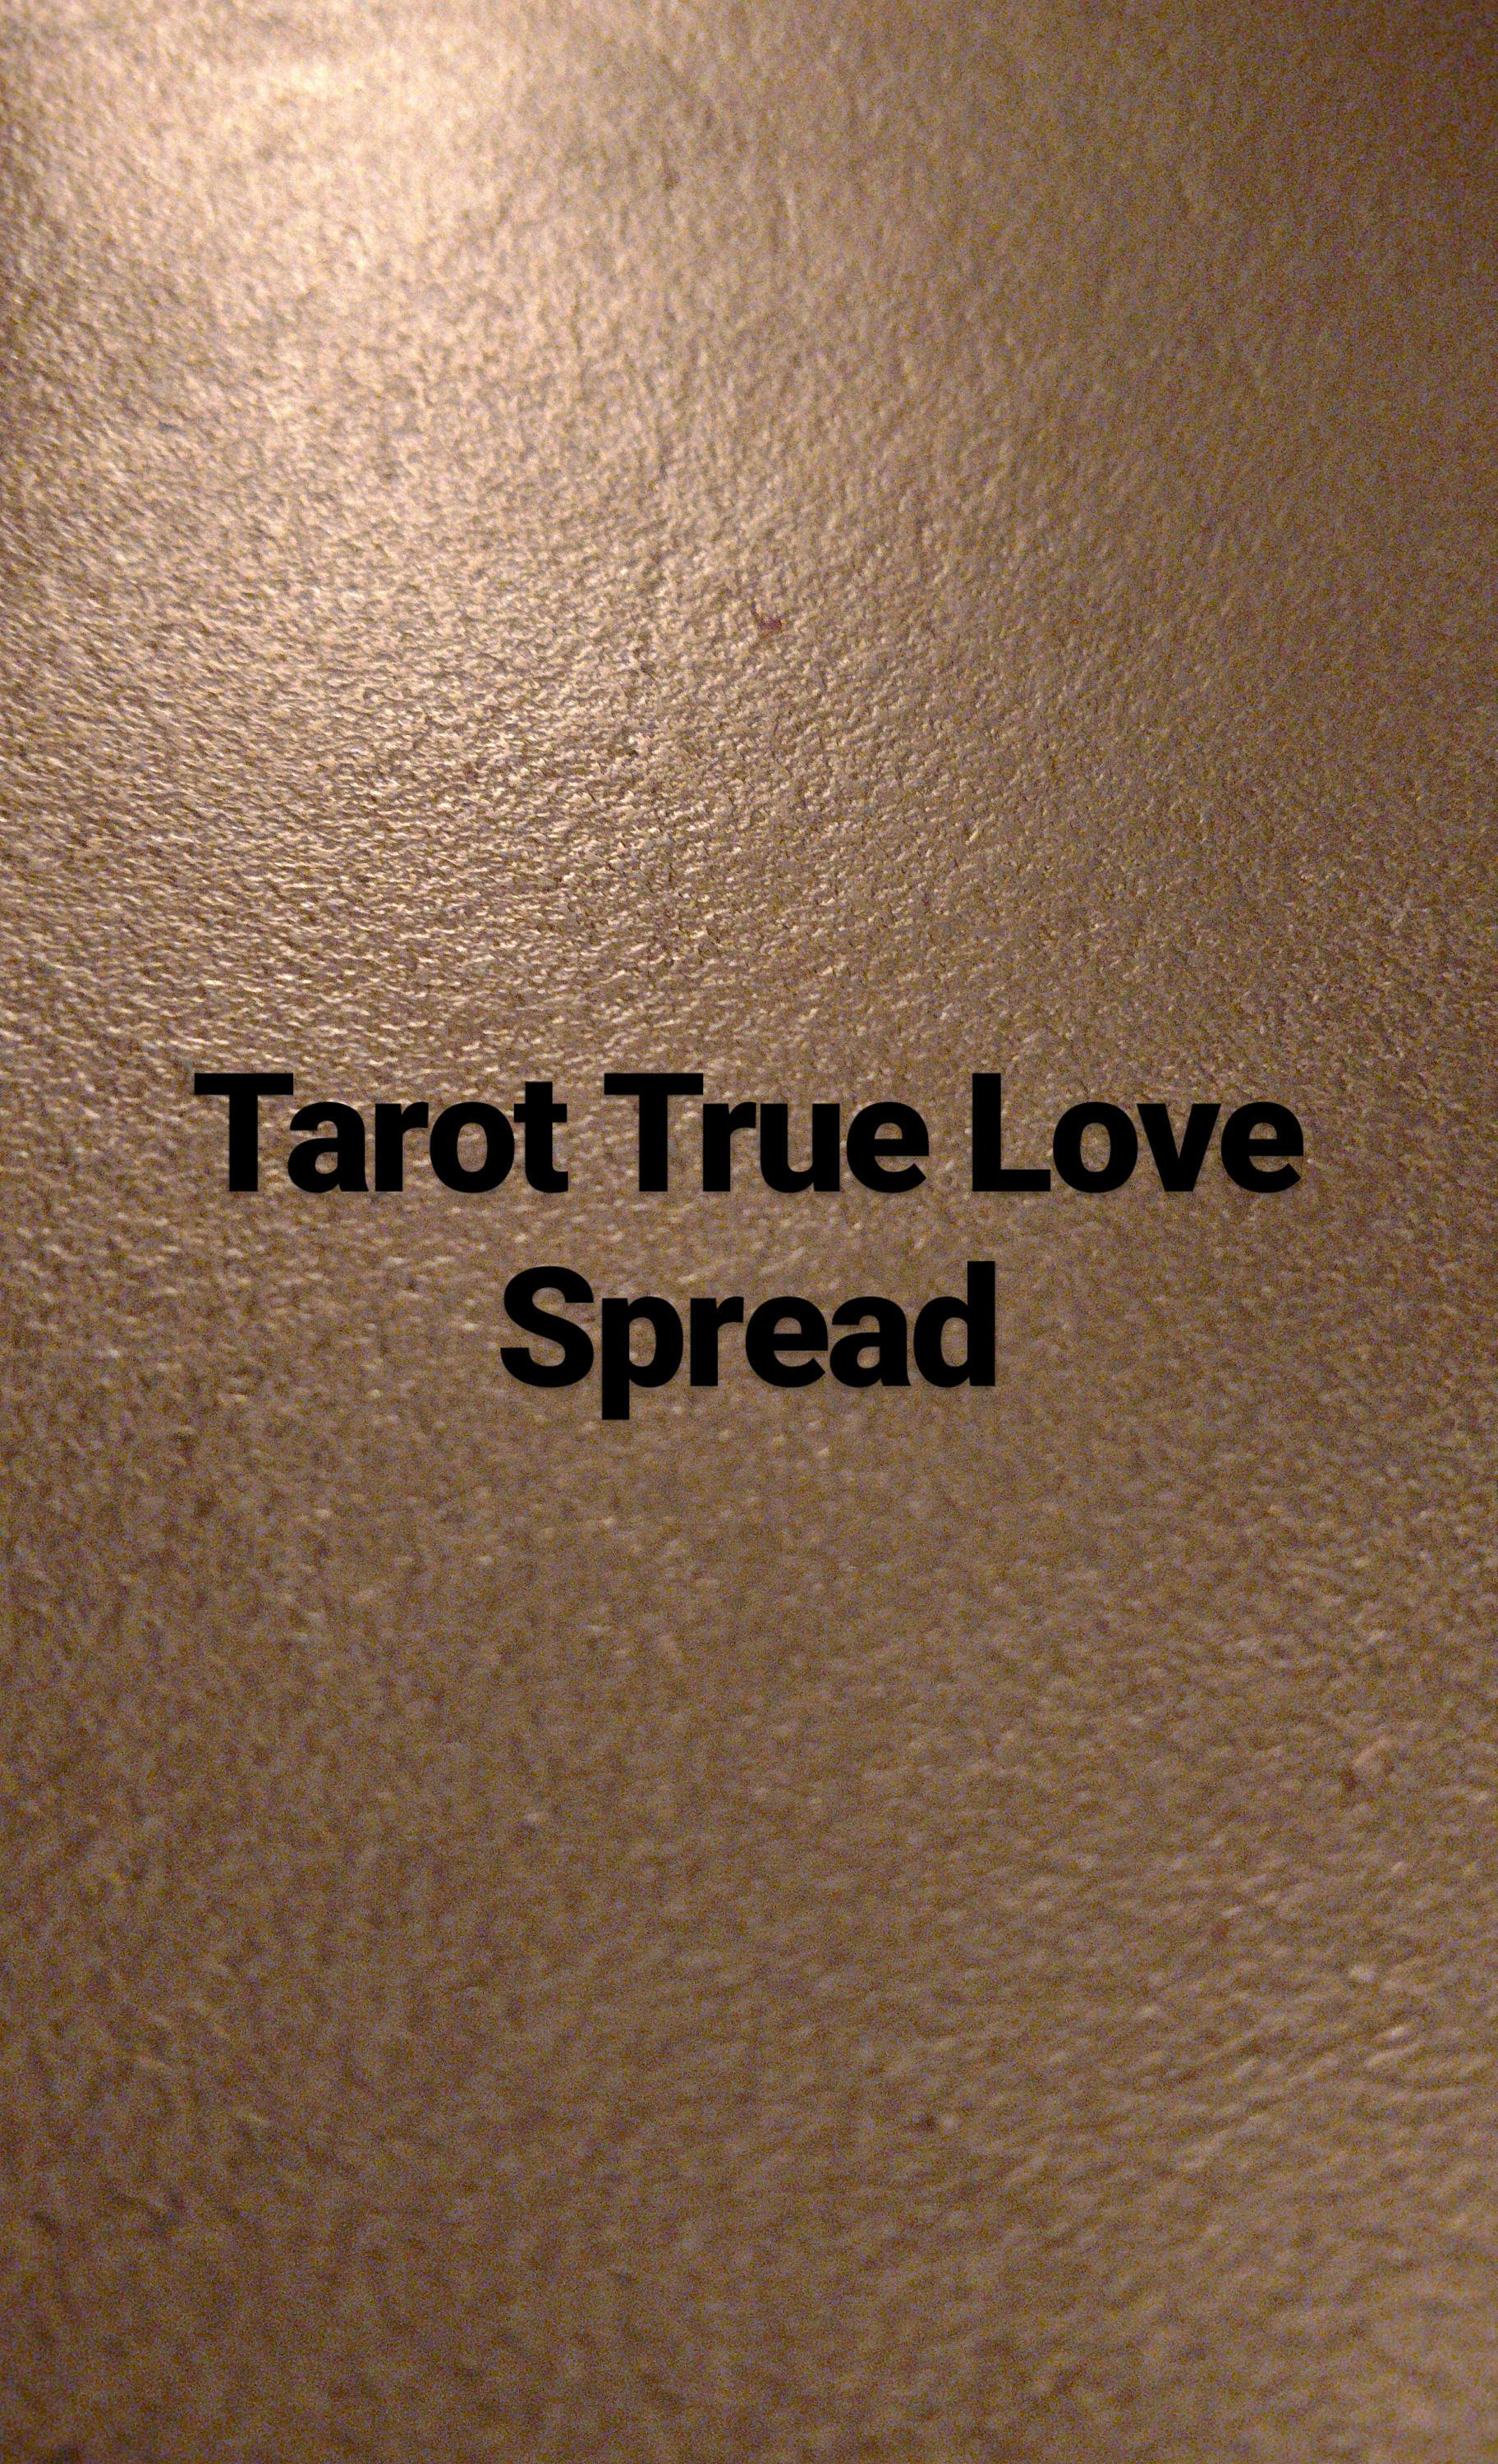 True Love Tarot Reading - The Devil & The Dame - Divination Readings and Tools